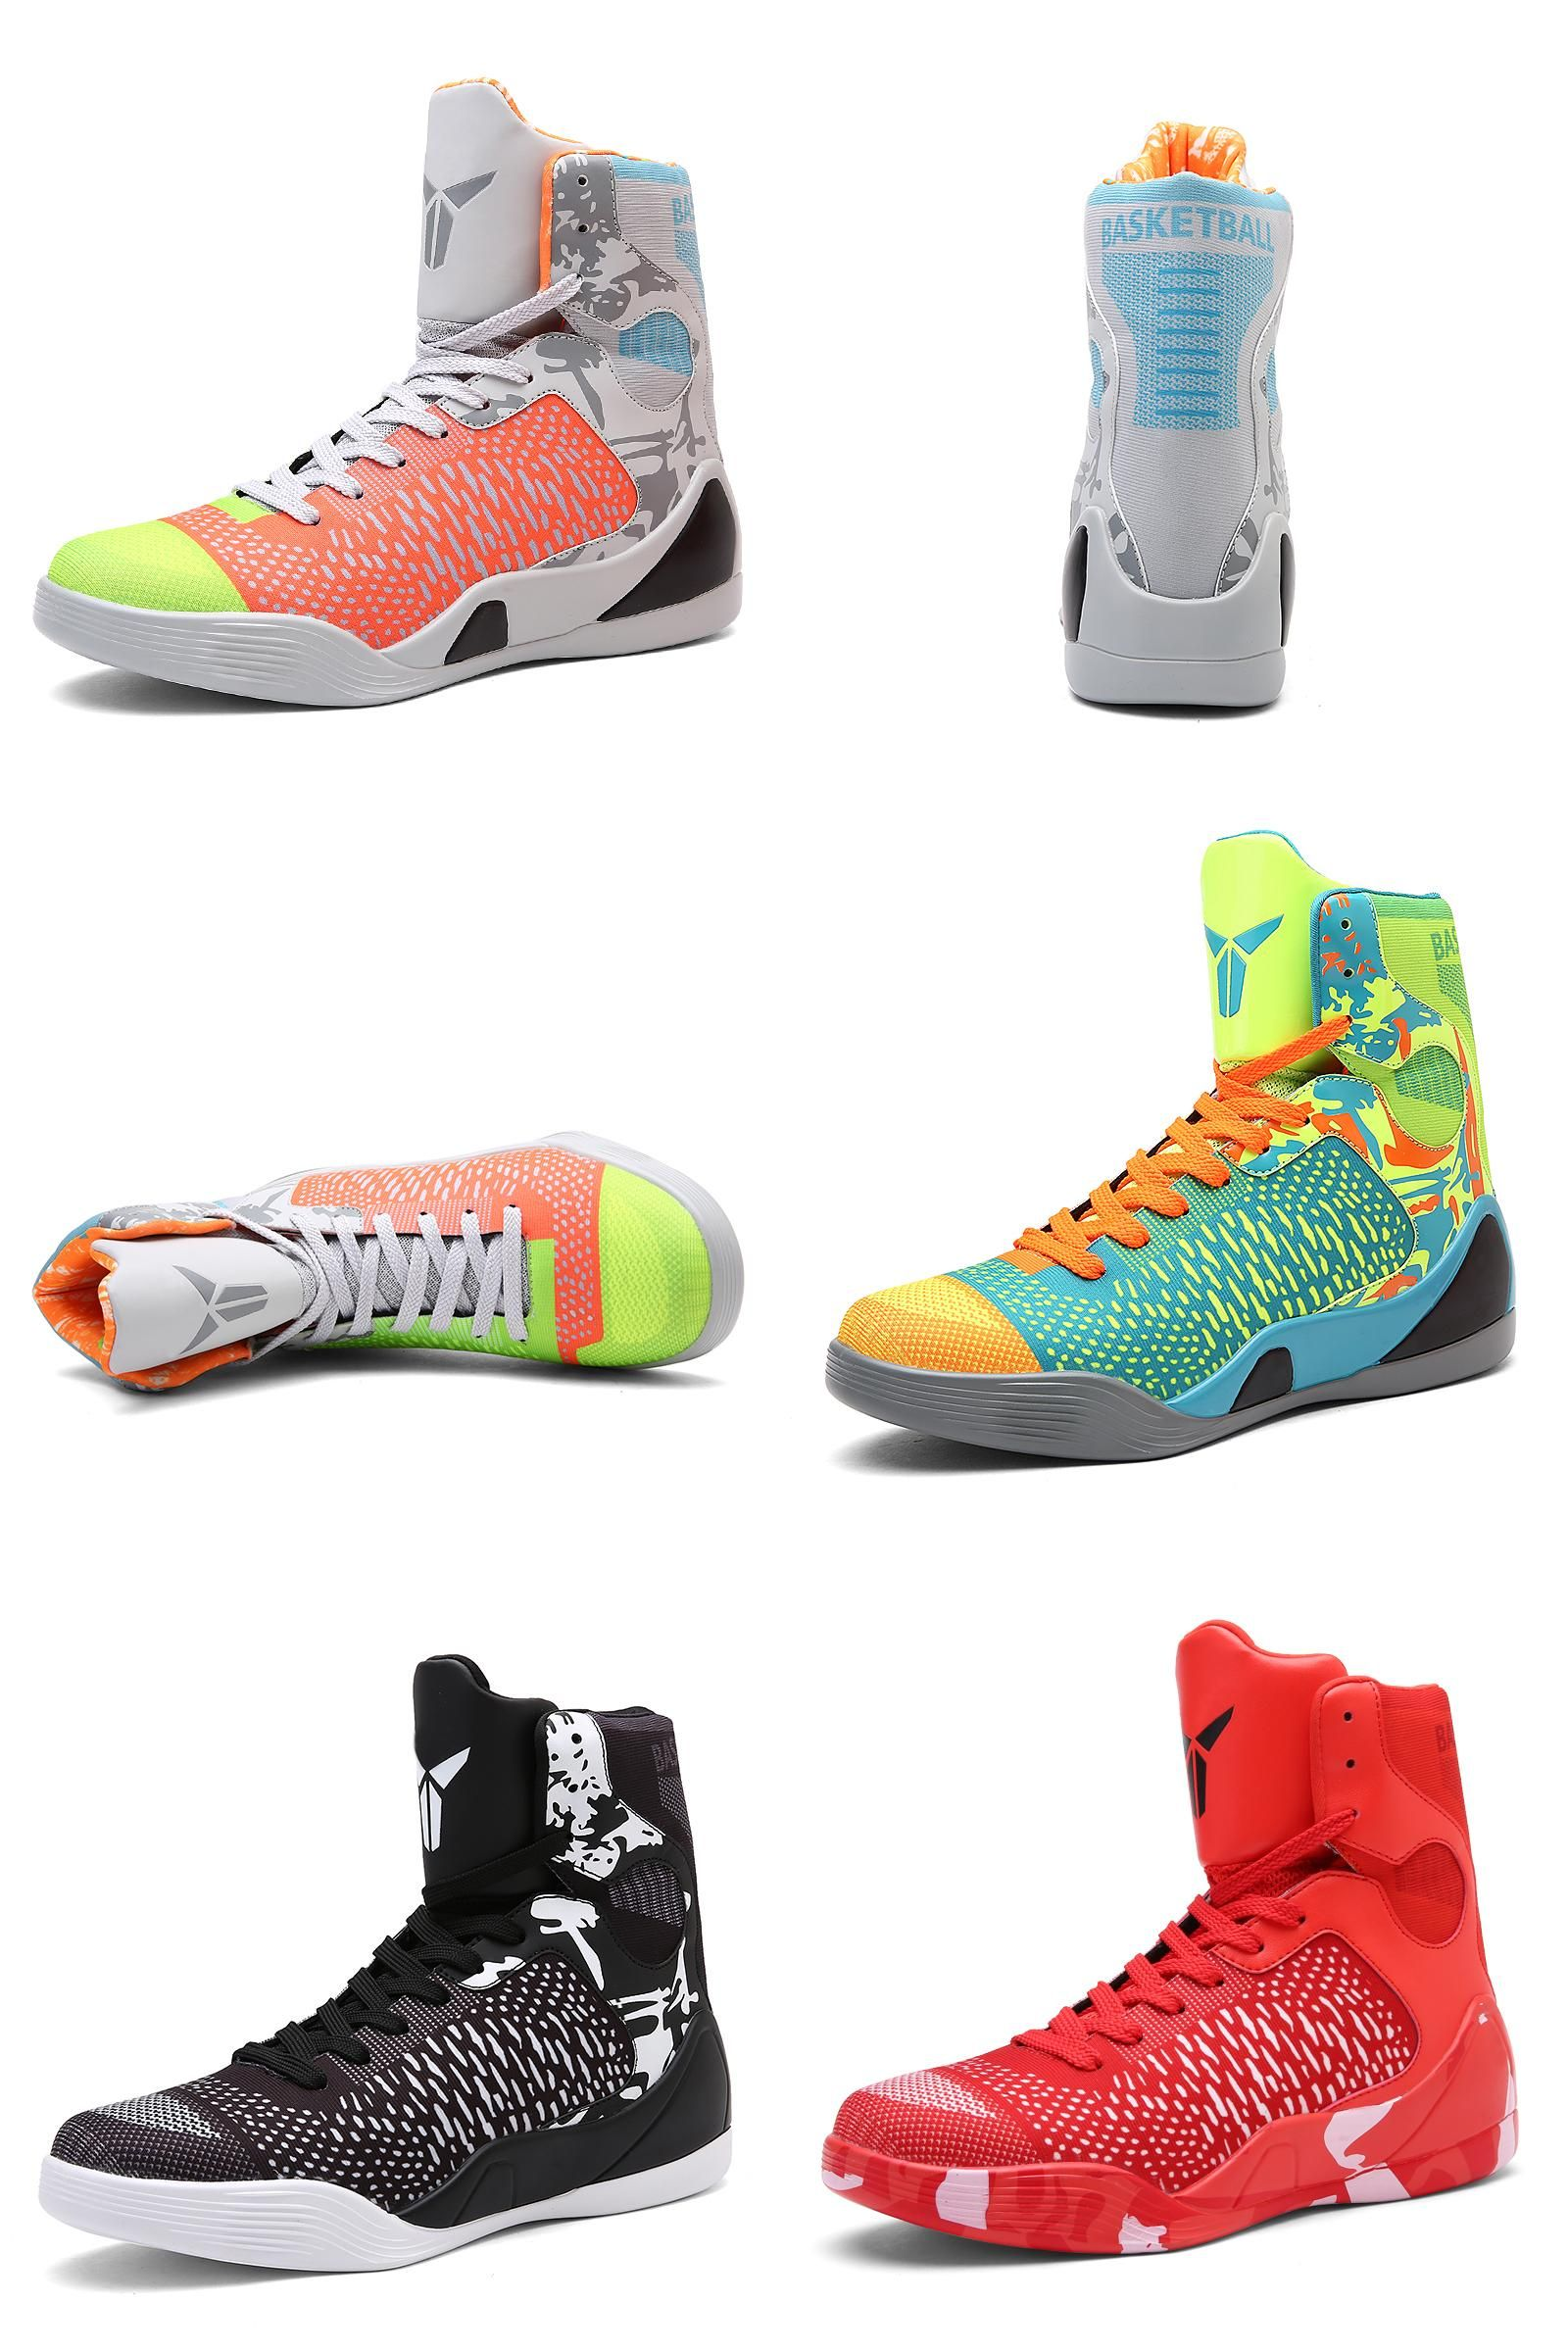 bace0b8d0a7  Visit to Buy  Mens Basketball Sneakers High Top Basketball Shoes For Men  Black